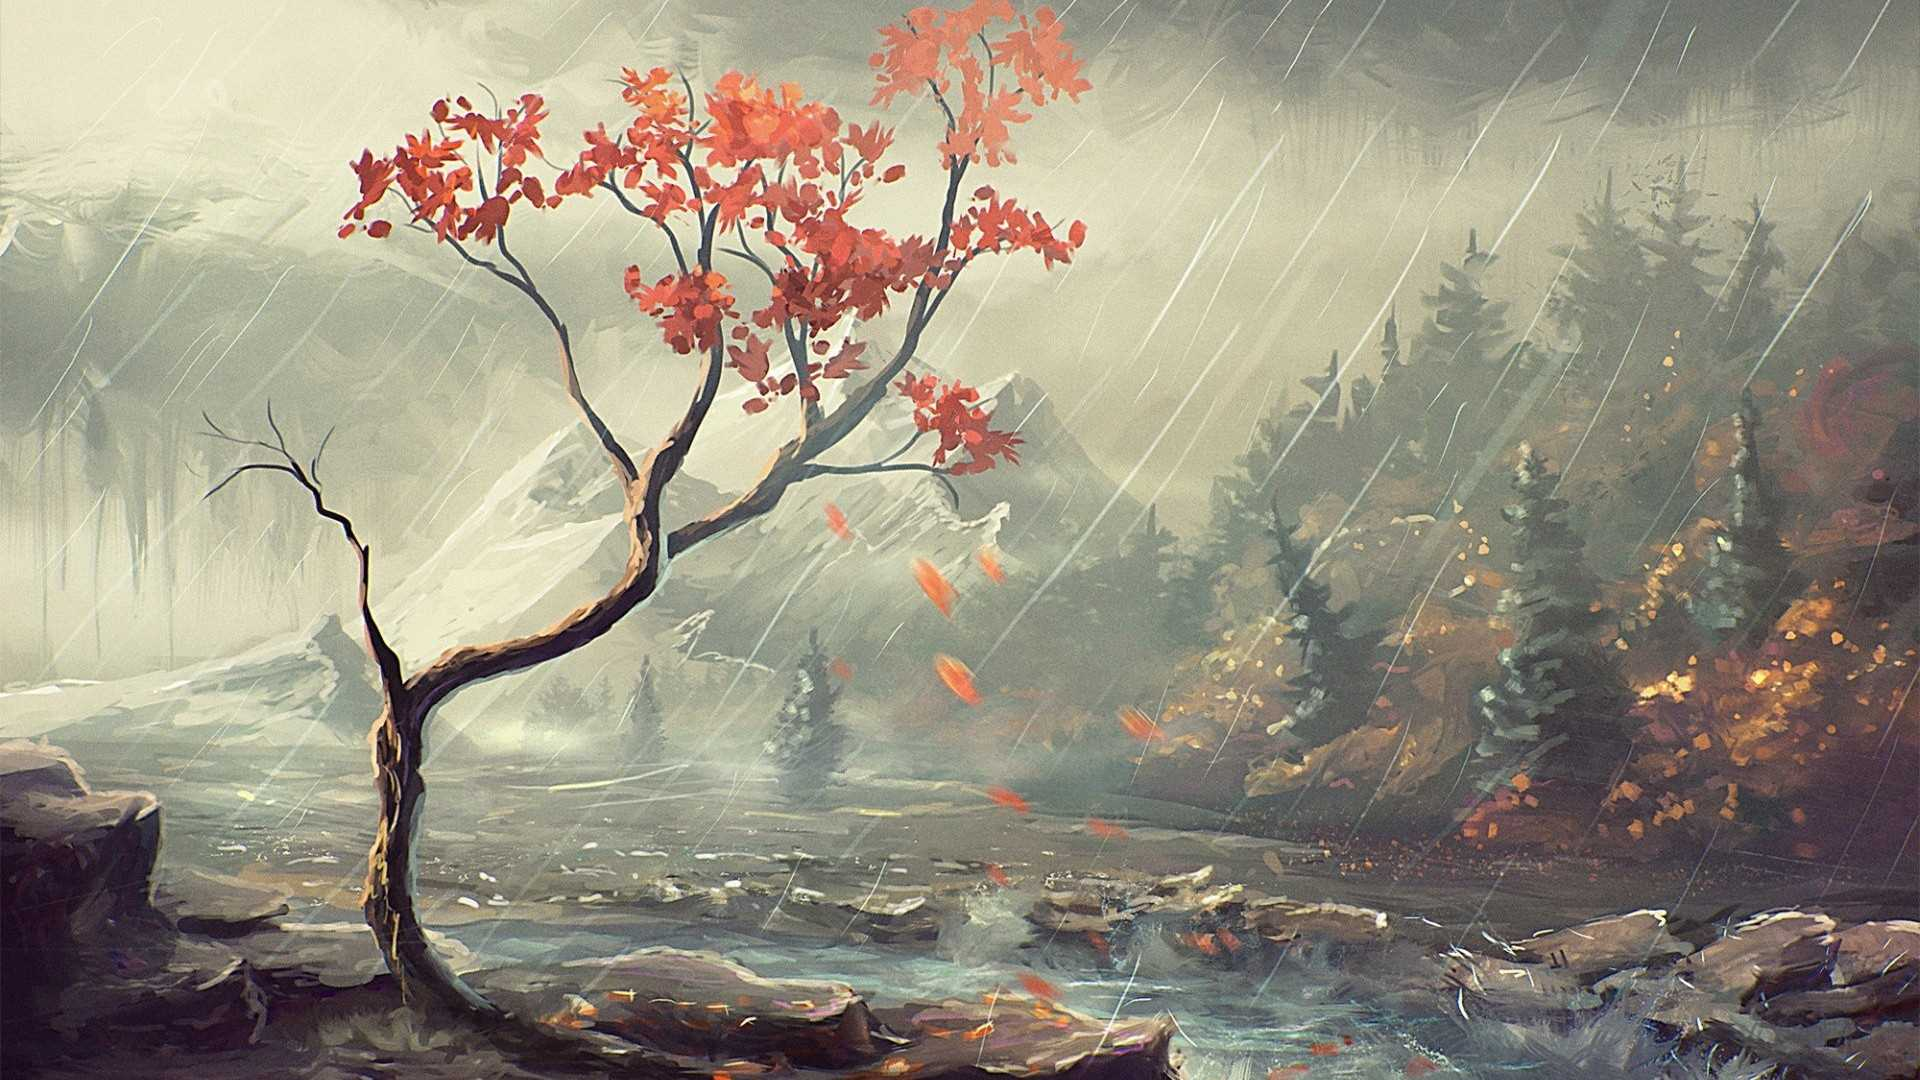 Japanese Landscape Painting Wallpapers   Top Japanese 1920x1080